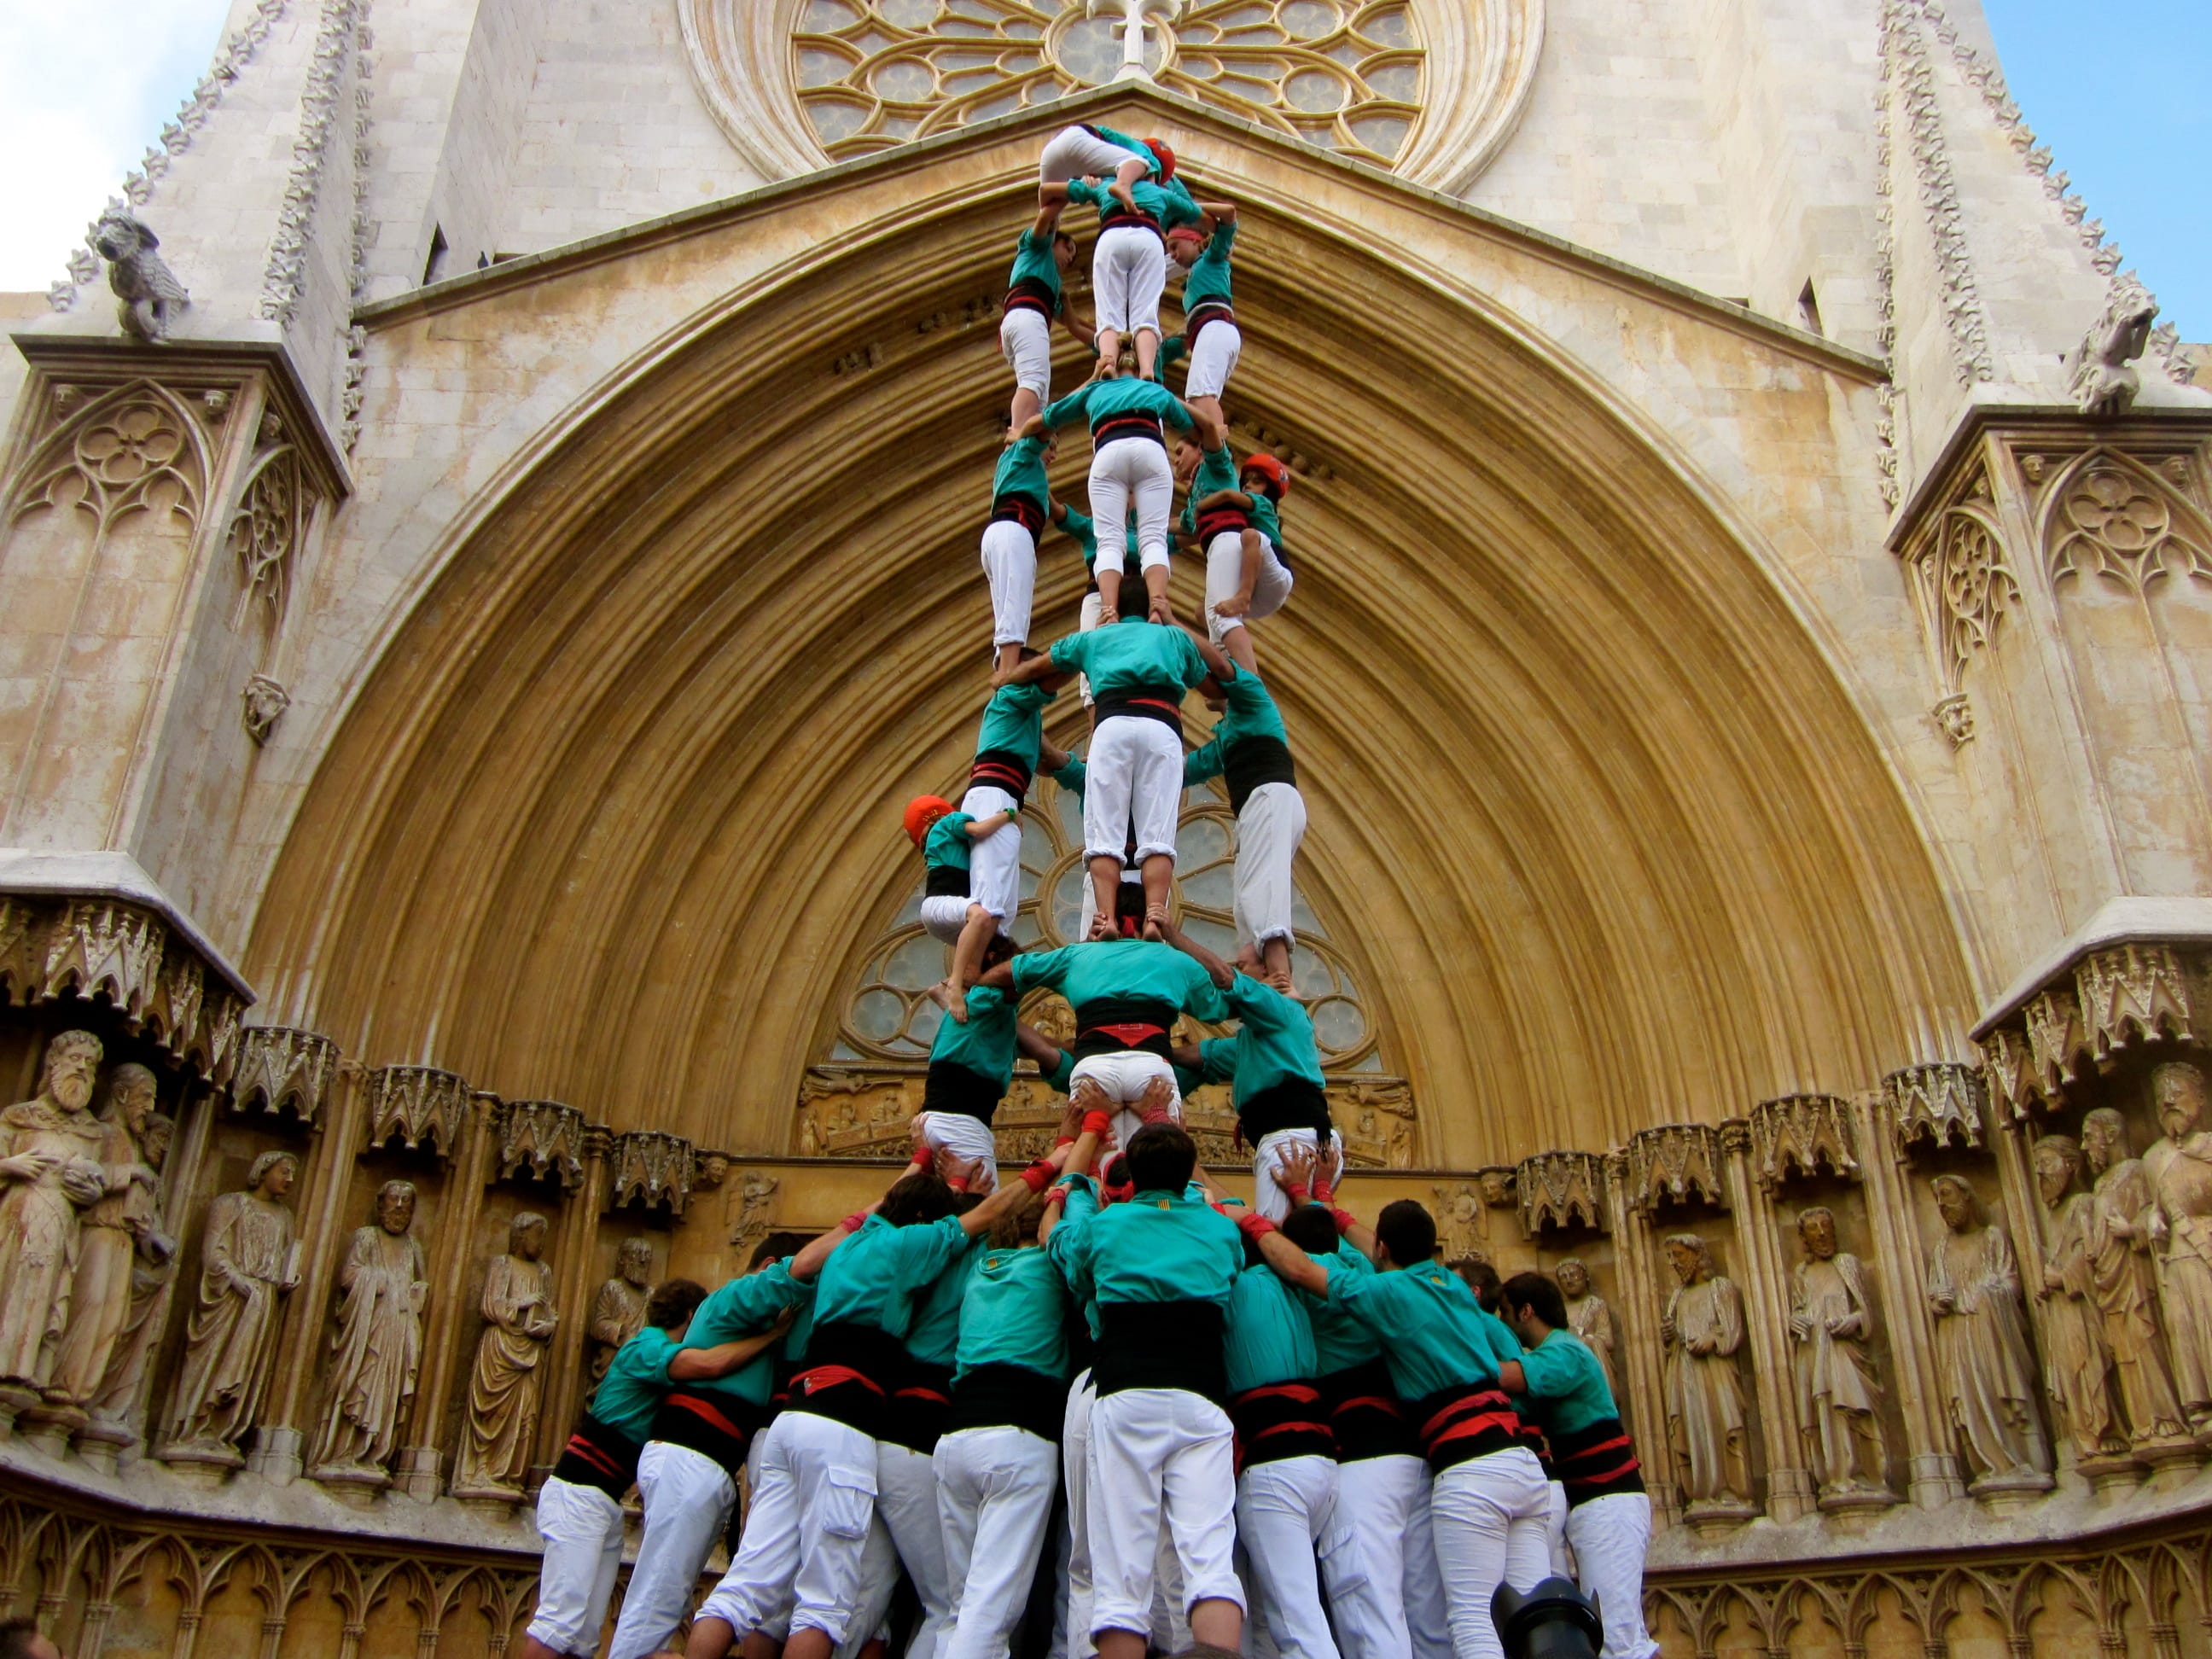 Catalan people climb on top of each other to build a high tower known as a castell